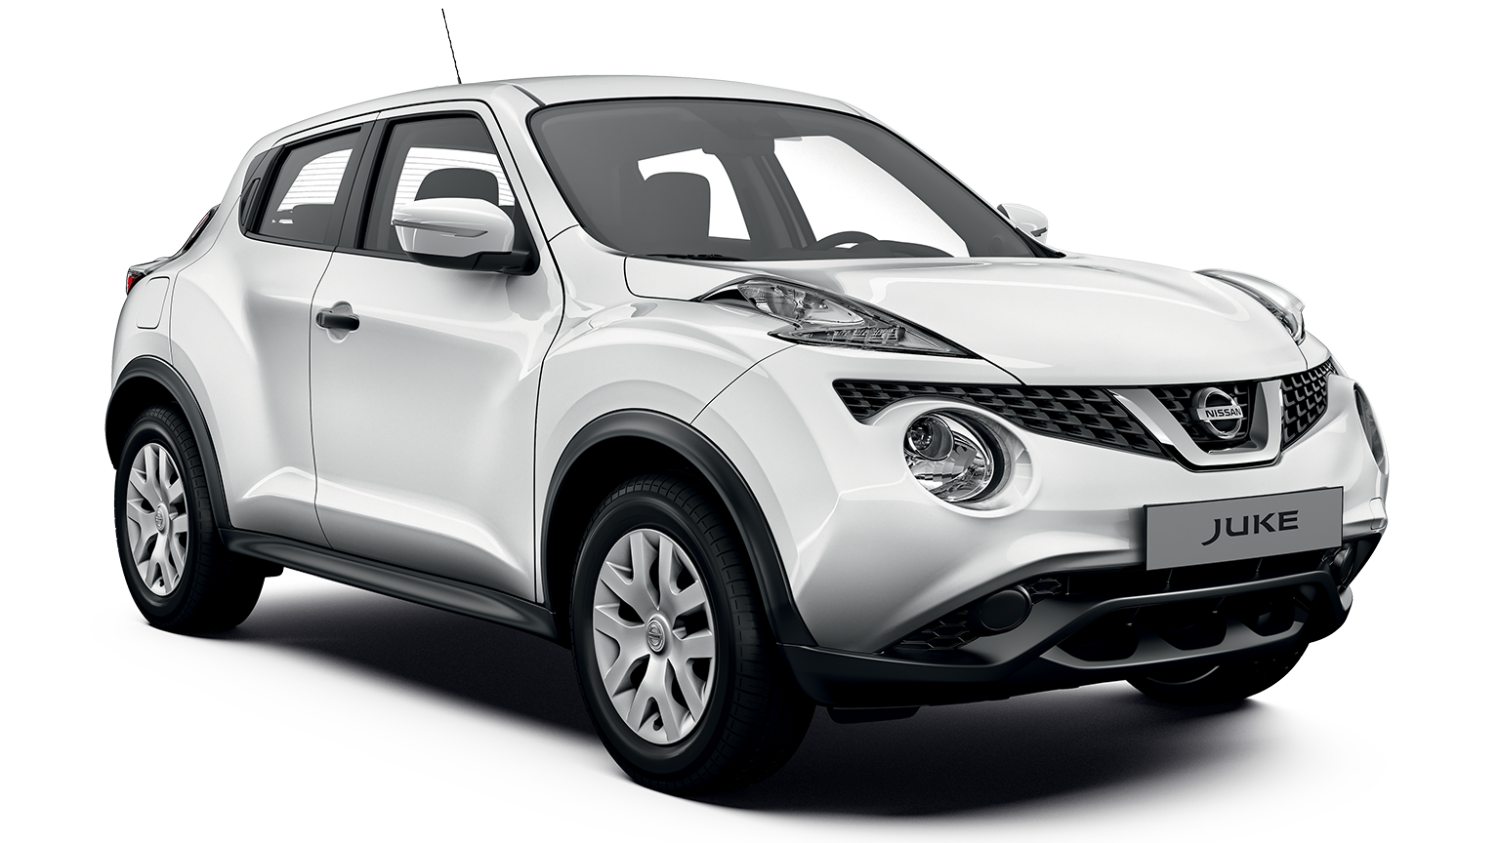 prices specifications nissan juke nissan. Black Bedroom Furniture Sets. Home Design Ideas